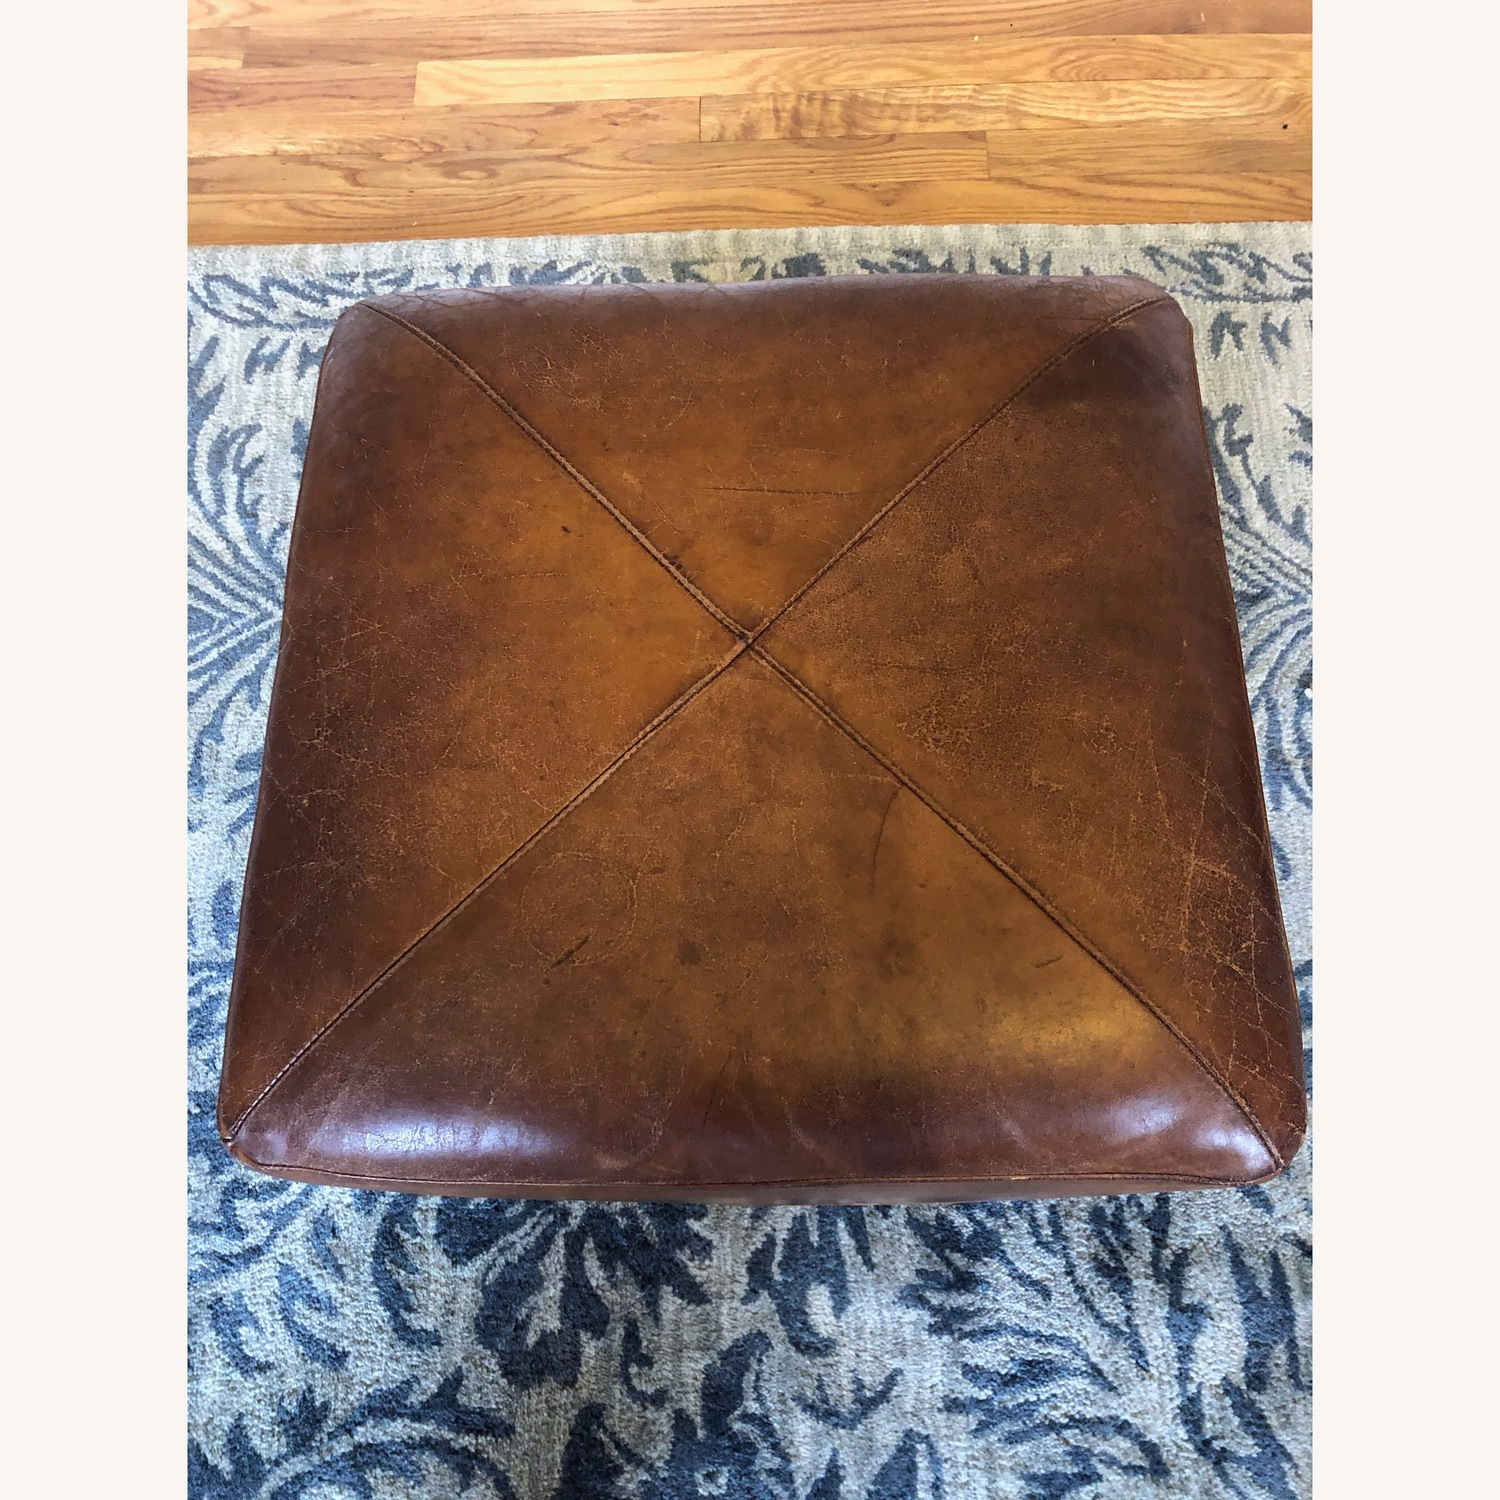 Crate & Barrel Leather Cube Ottoman - image-2